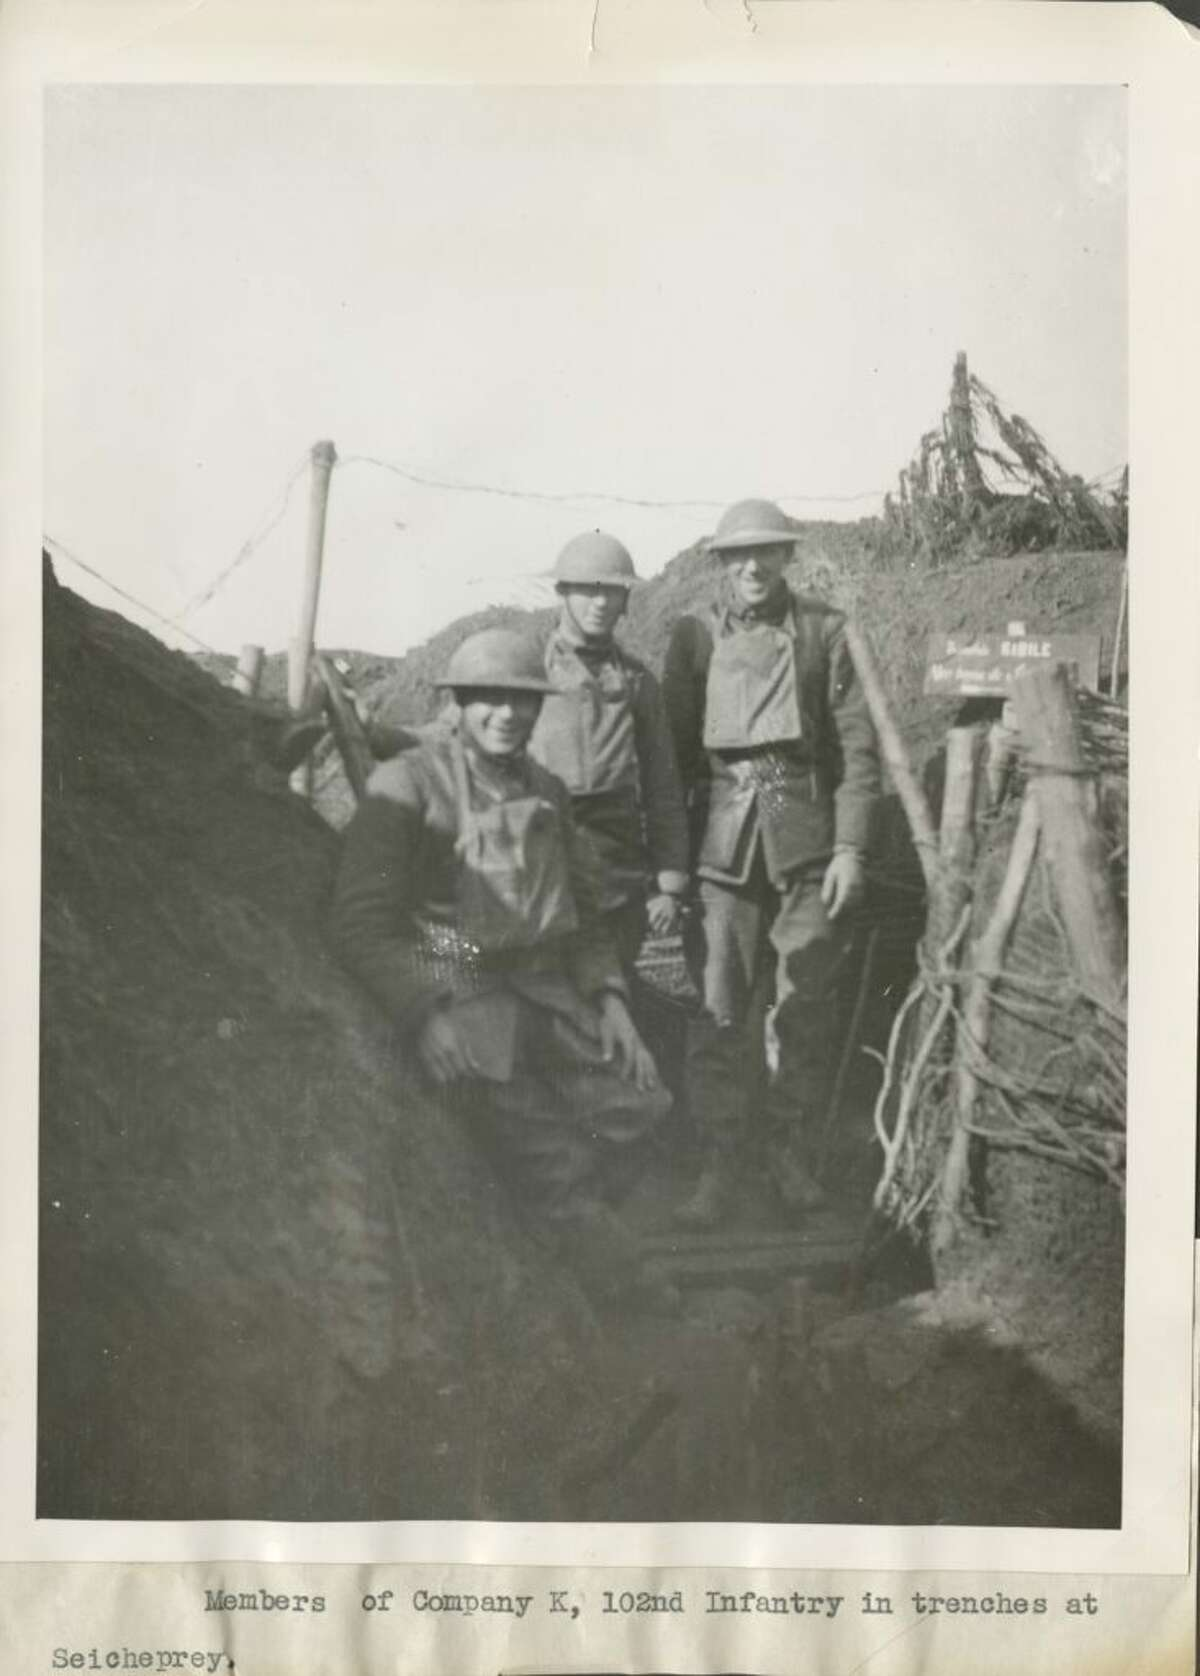 Soldiers prepare for battle during World War I in Seicheprey, France. Ridgefield High School sophomores Aaron Cohen and Mairead Lacey will participate in a trench restoration program in Seicheprey this summer.